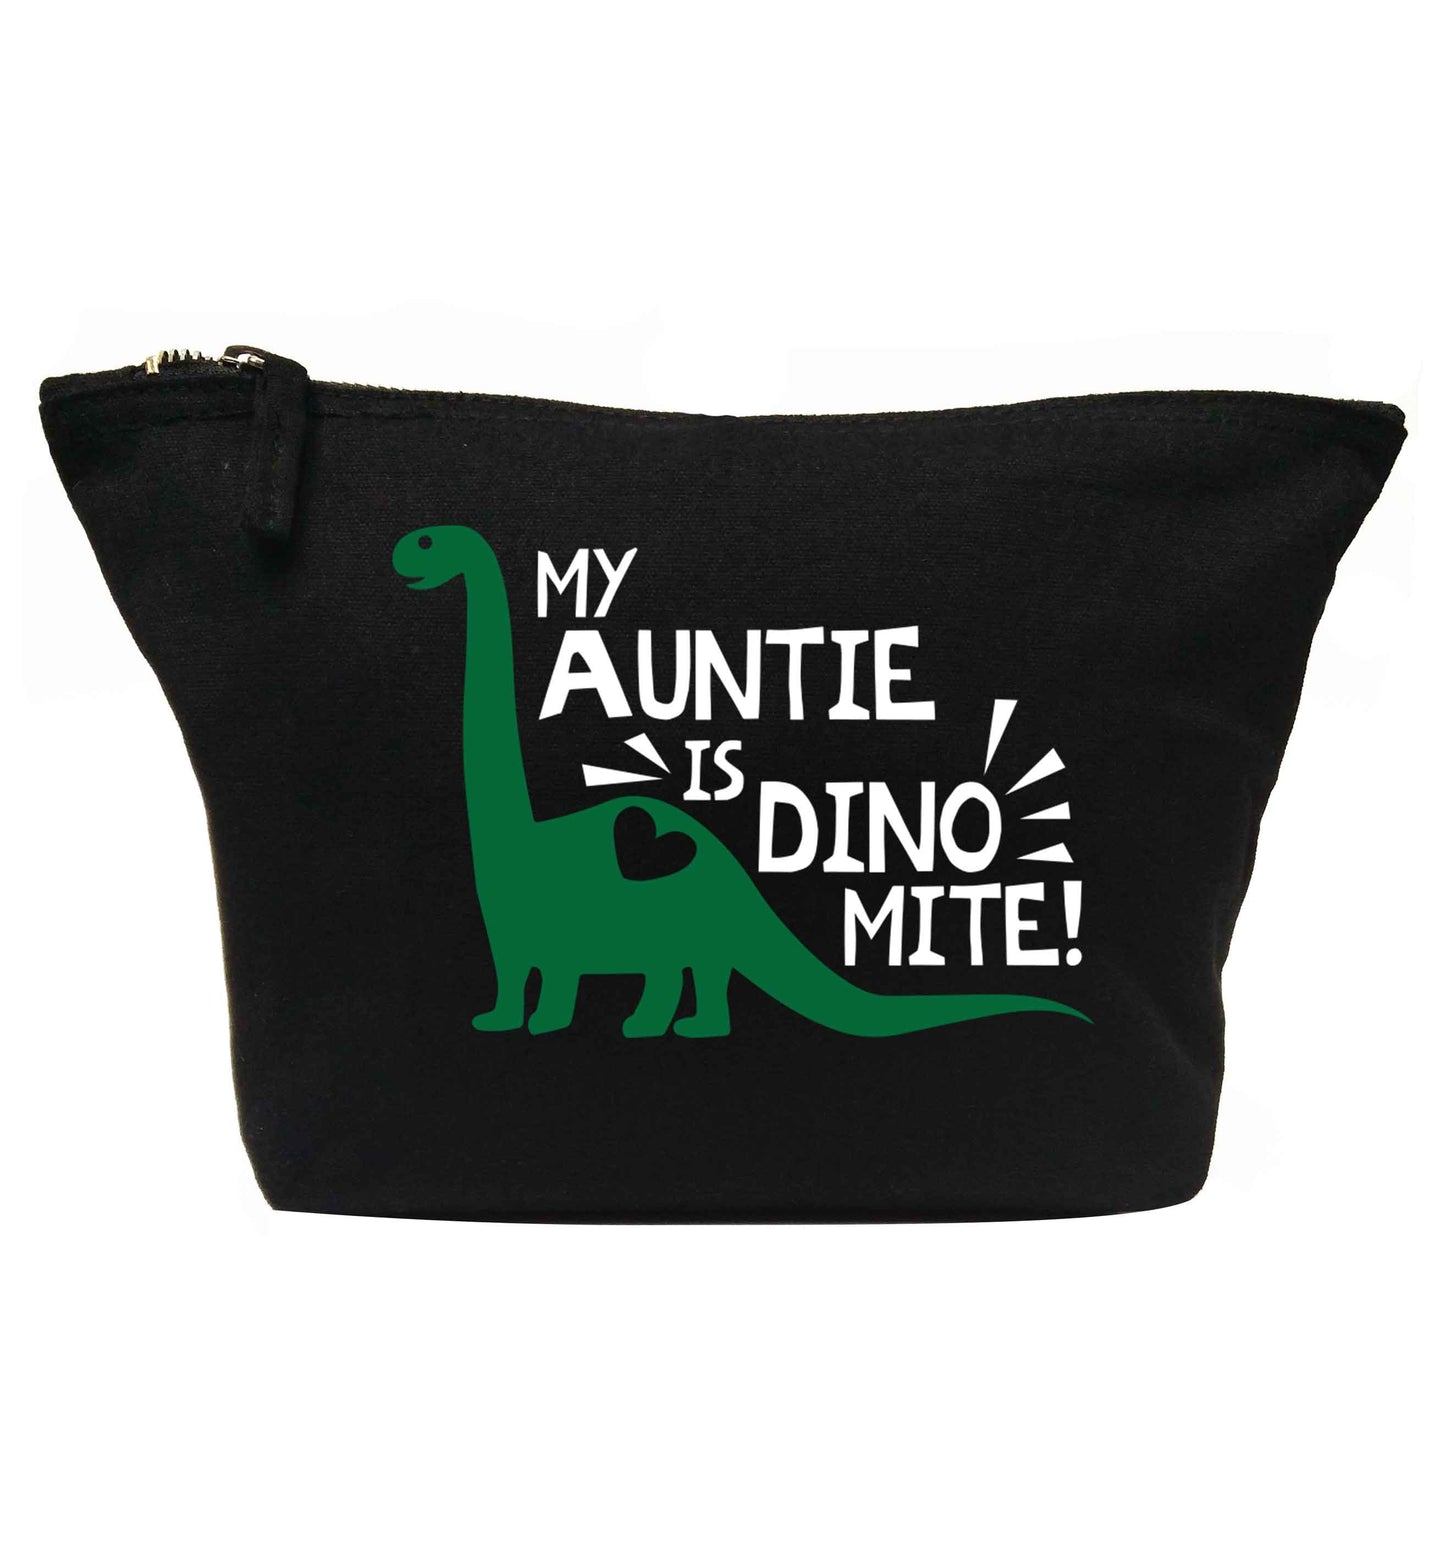 My auntie is dinomite! | makeup / wash bag